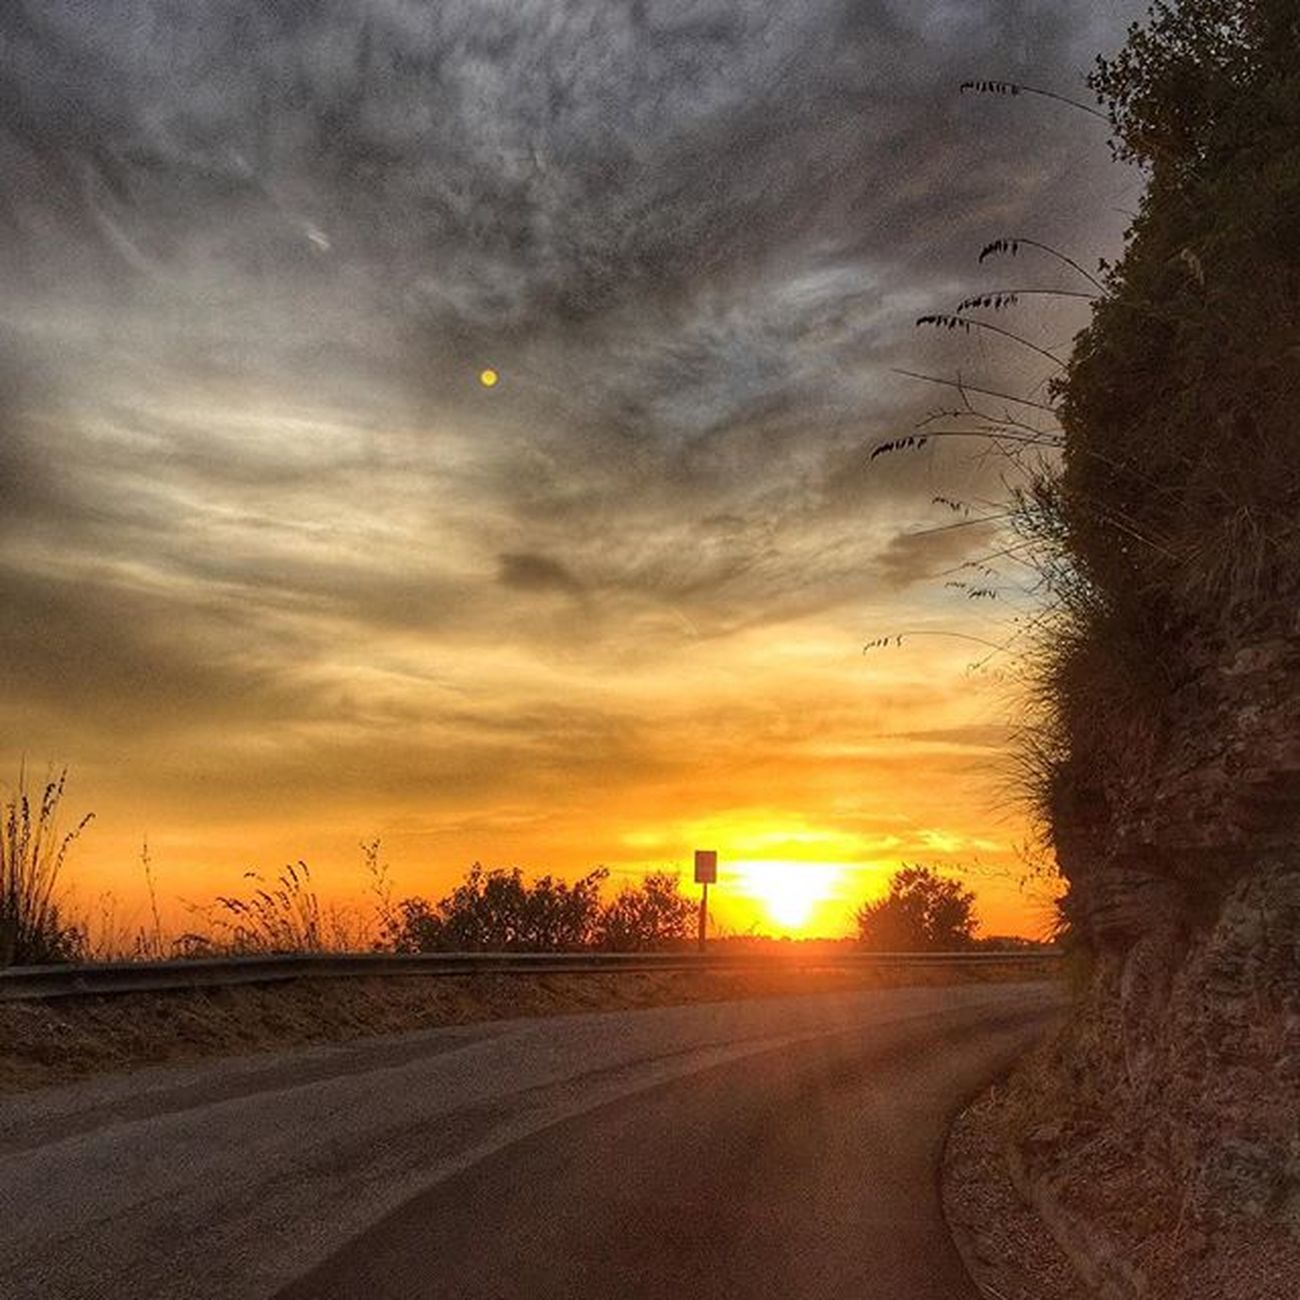 Sunset Road Likeforlike Picoftheday Tag Follow Summer Cilento Instagood Istanday Instango Tagphoto Tag4live Tag4like Campaniafelix Life